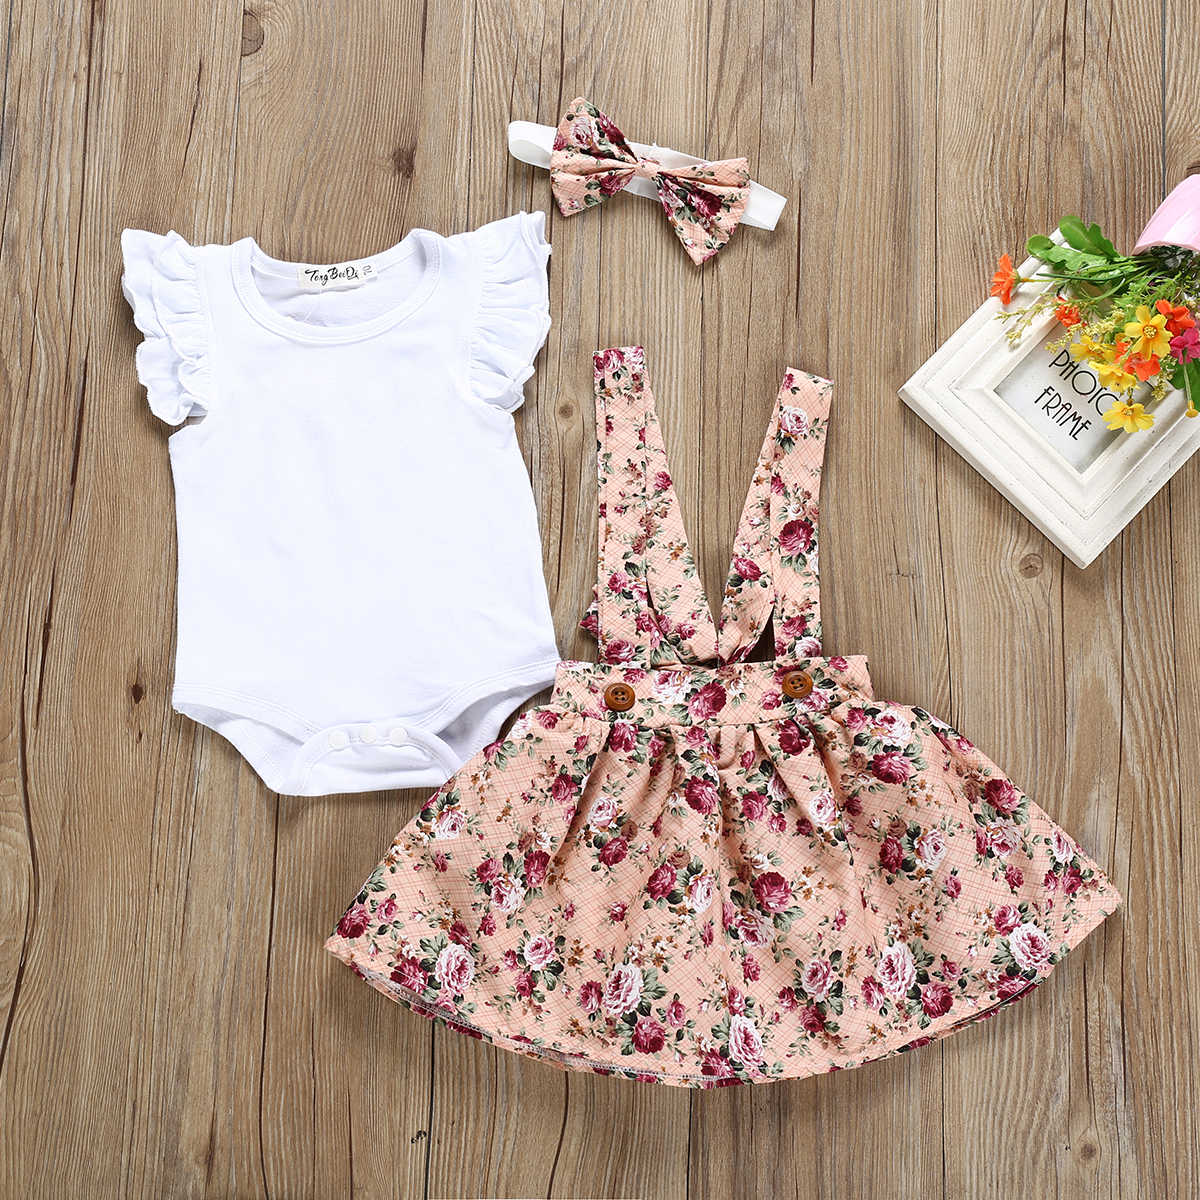 3pcs Newborn Baby Girl Clothes Short sleeve Romper Top+floral strap dress+Headband Toddler Baby clothing Summer Cute Outfits Set